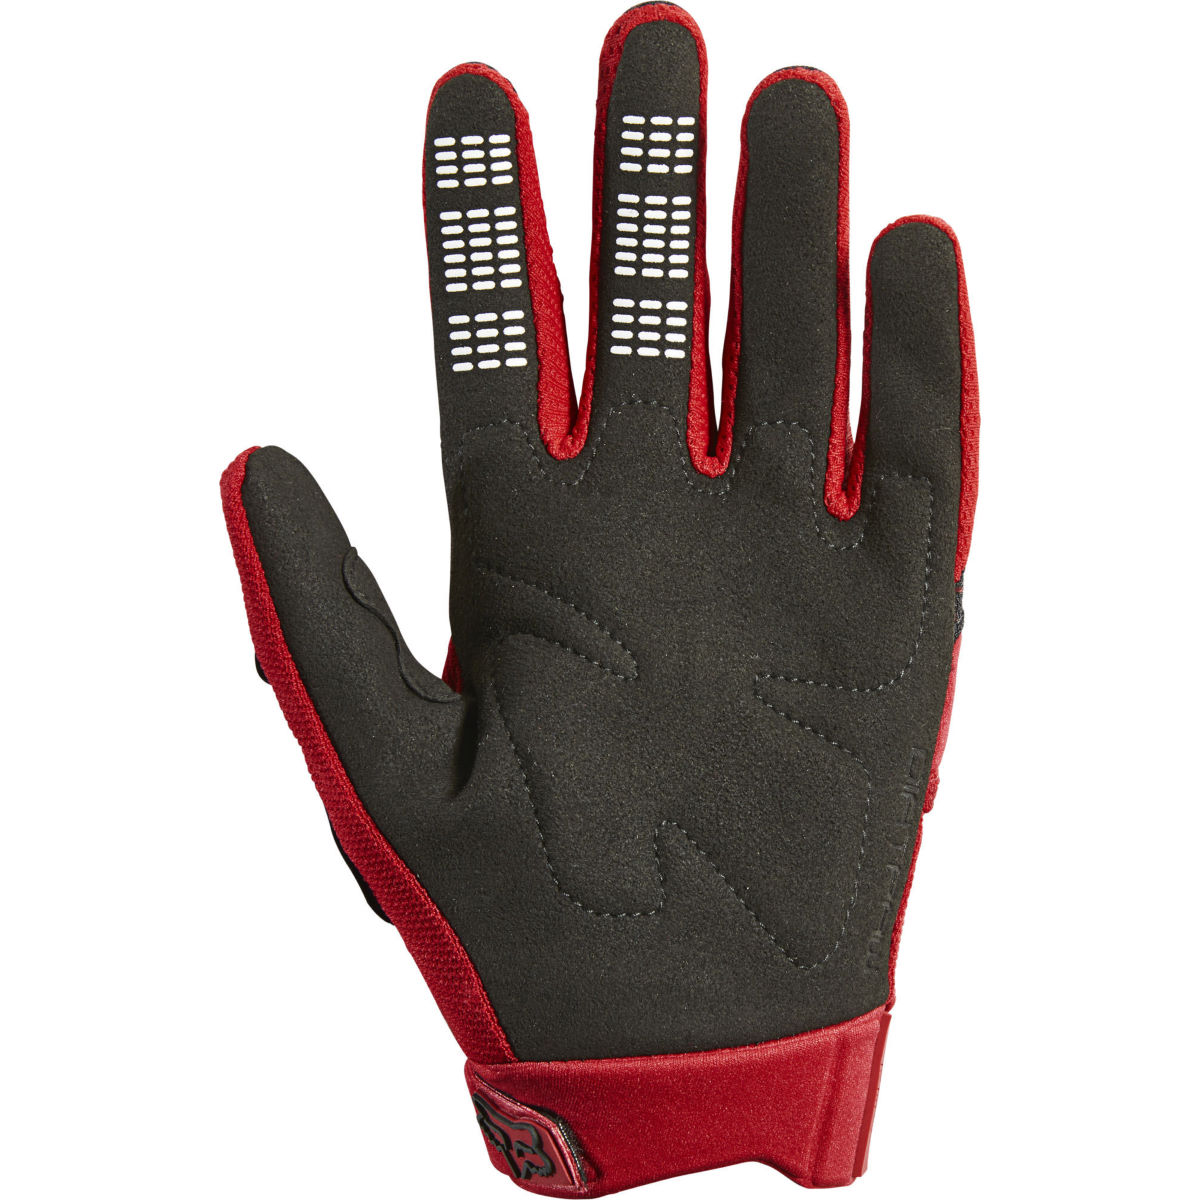 Fox Racing Youth Dirtpaw Race Cycling Gloves - Y-s Flame Red  Gloves